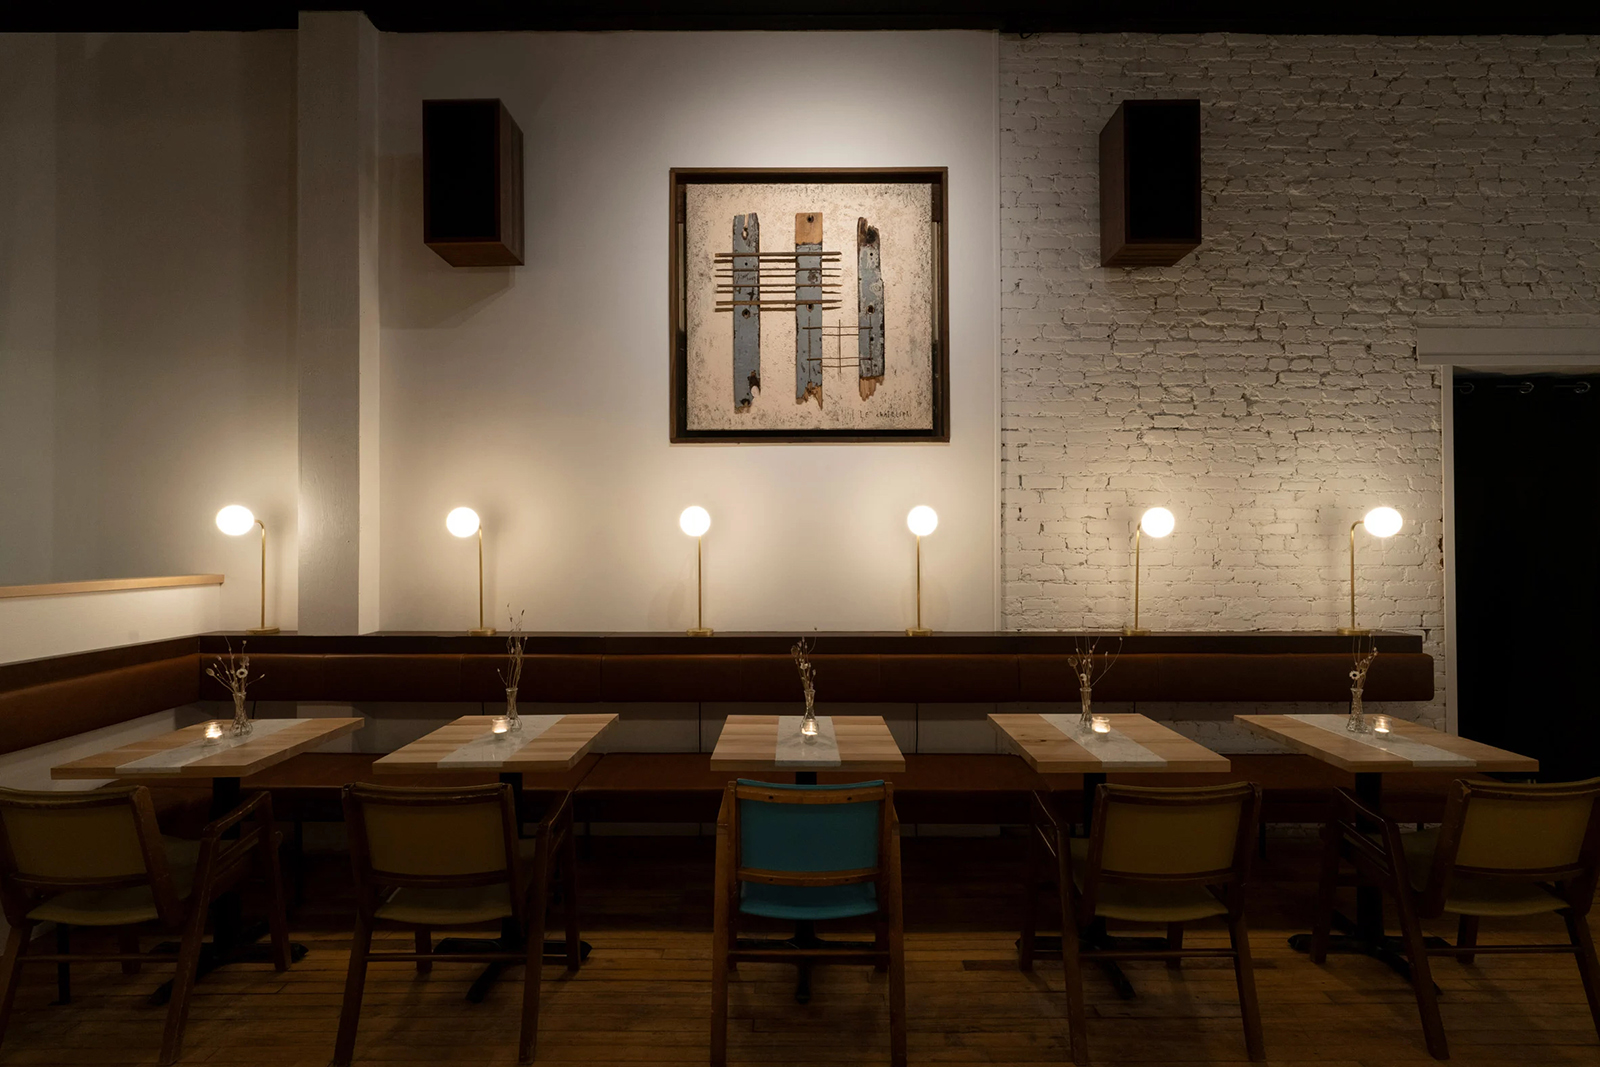 Artworks were created for the space by a local designer, using reclaimed materials discarded during the refurbishment